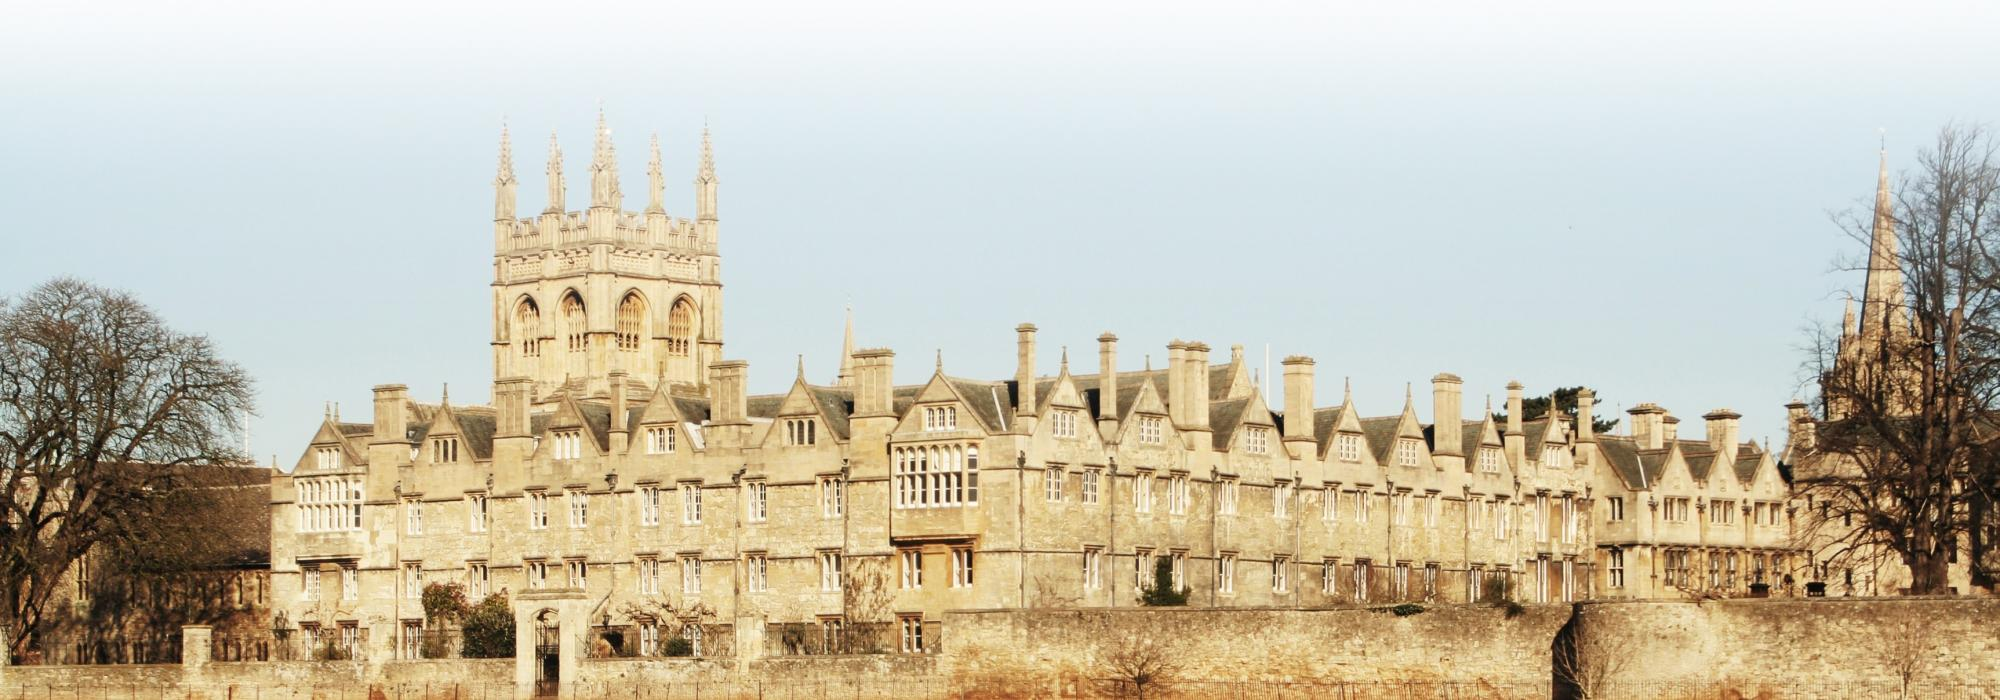 Merton College, Oxford